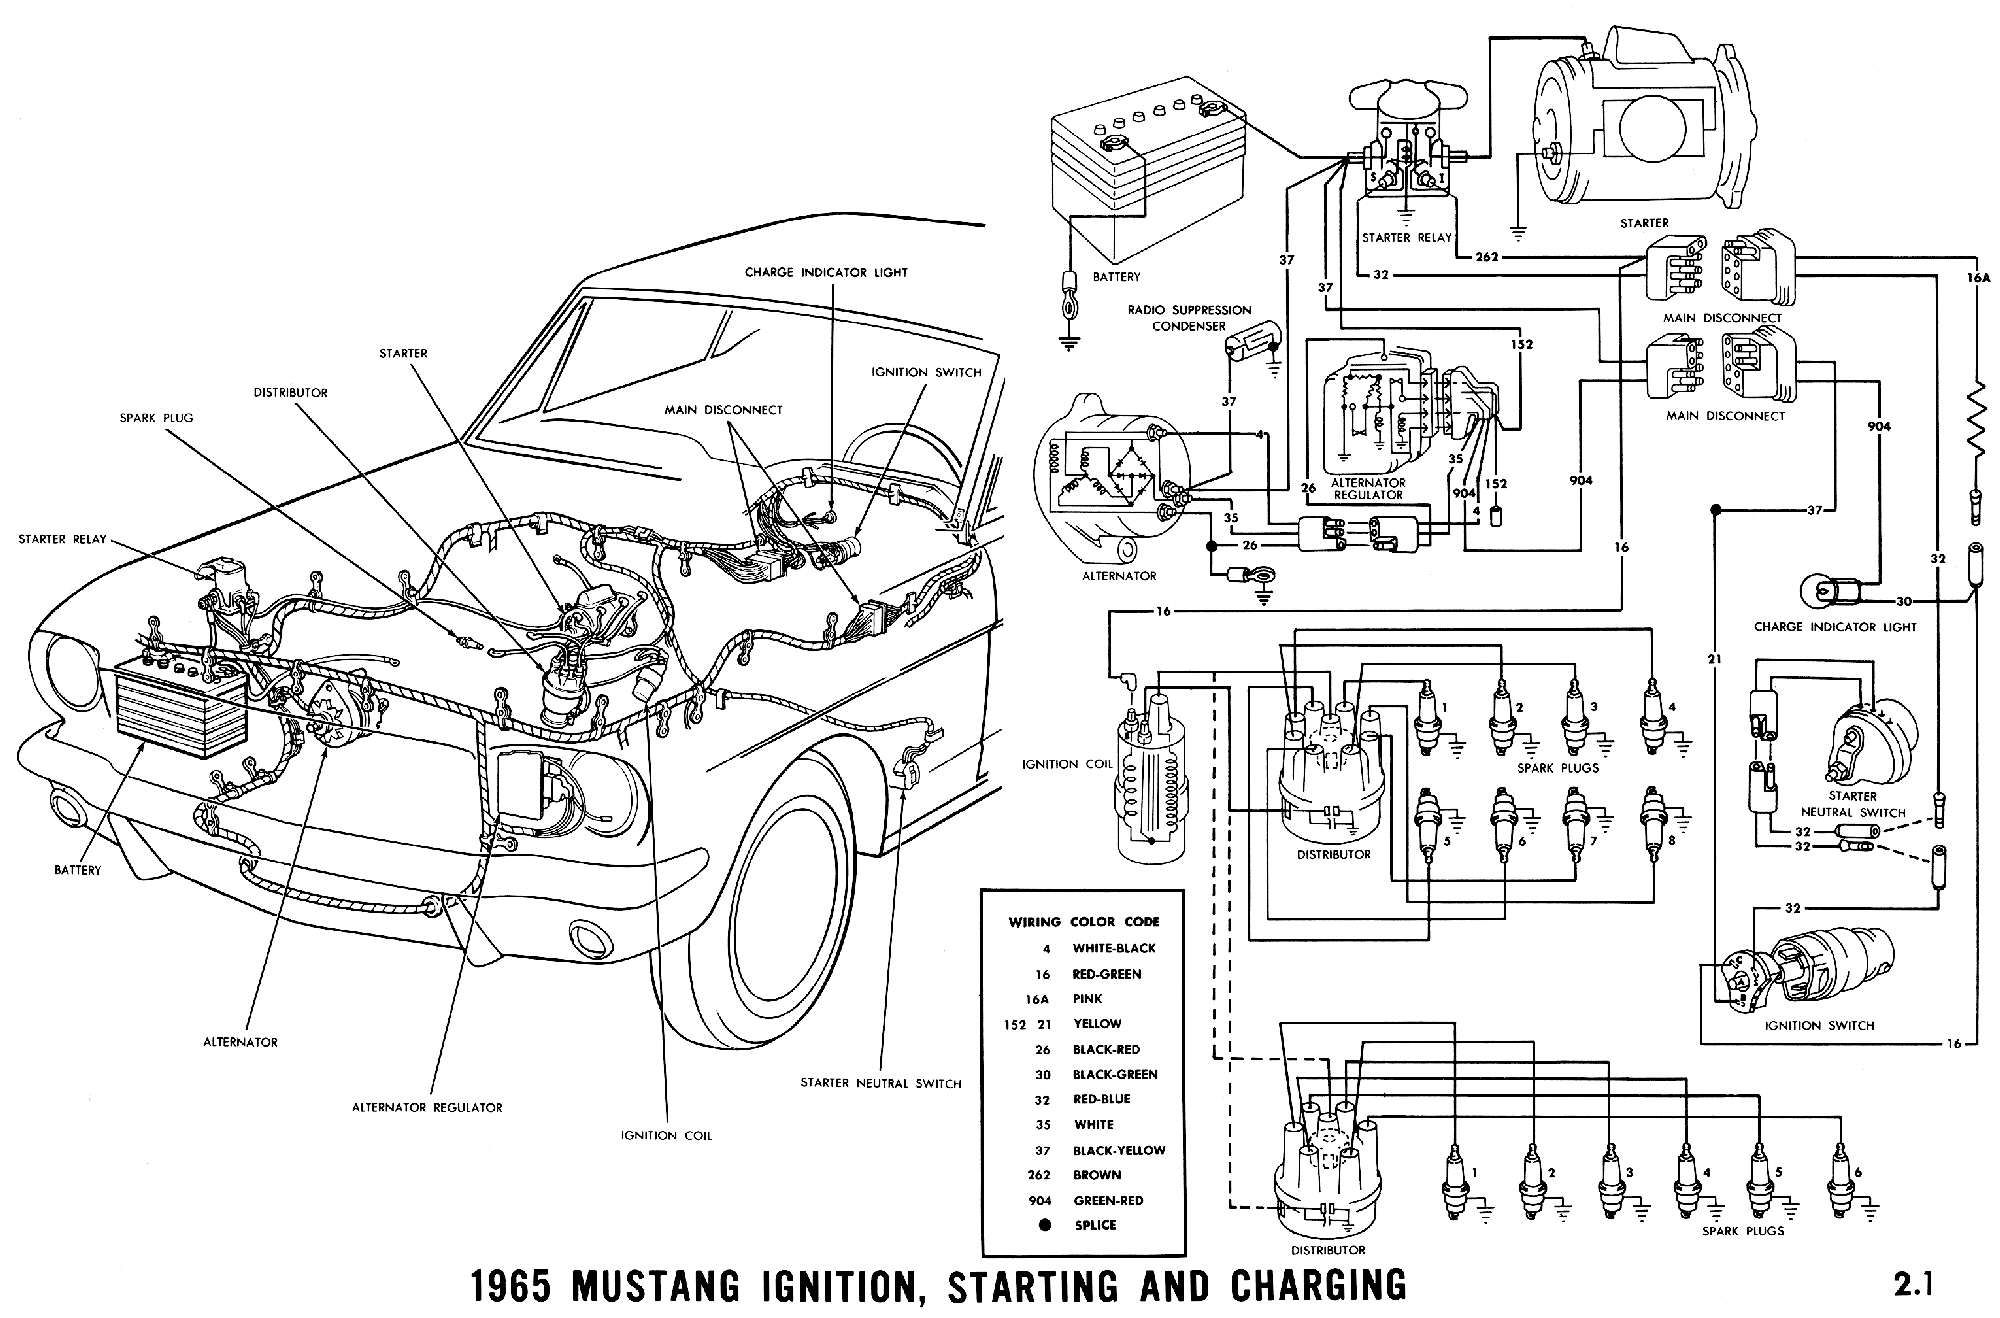 medium resolution of 1965 mustang wiring diagrams mustang 1965 mustang mustang wiring diagram 1970 mustang coup